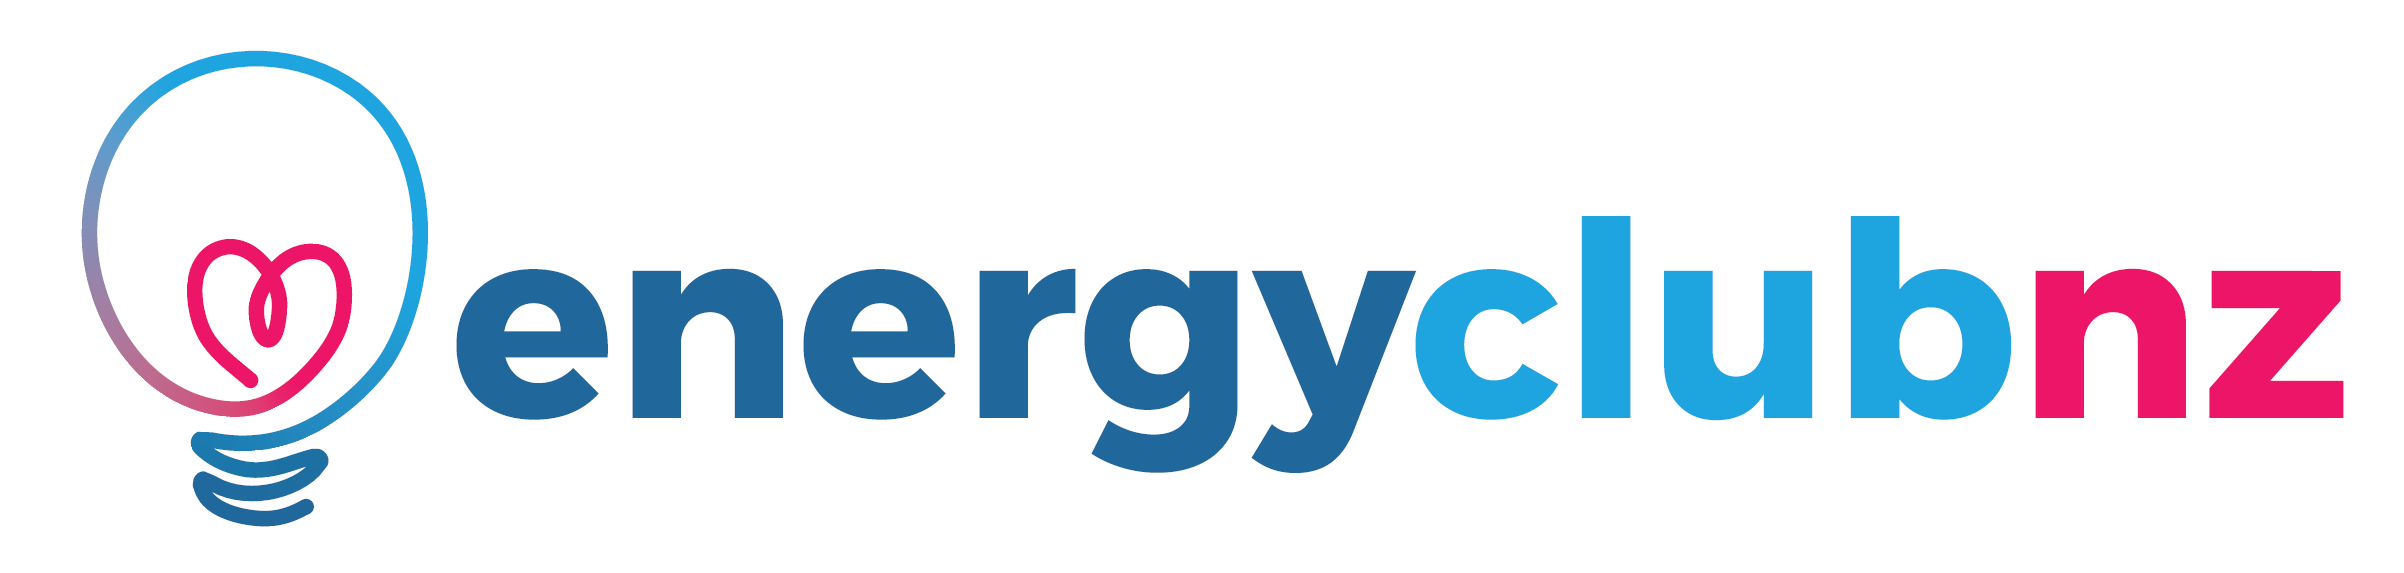 energy club nz Power Company